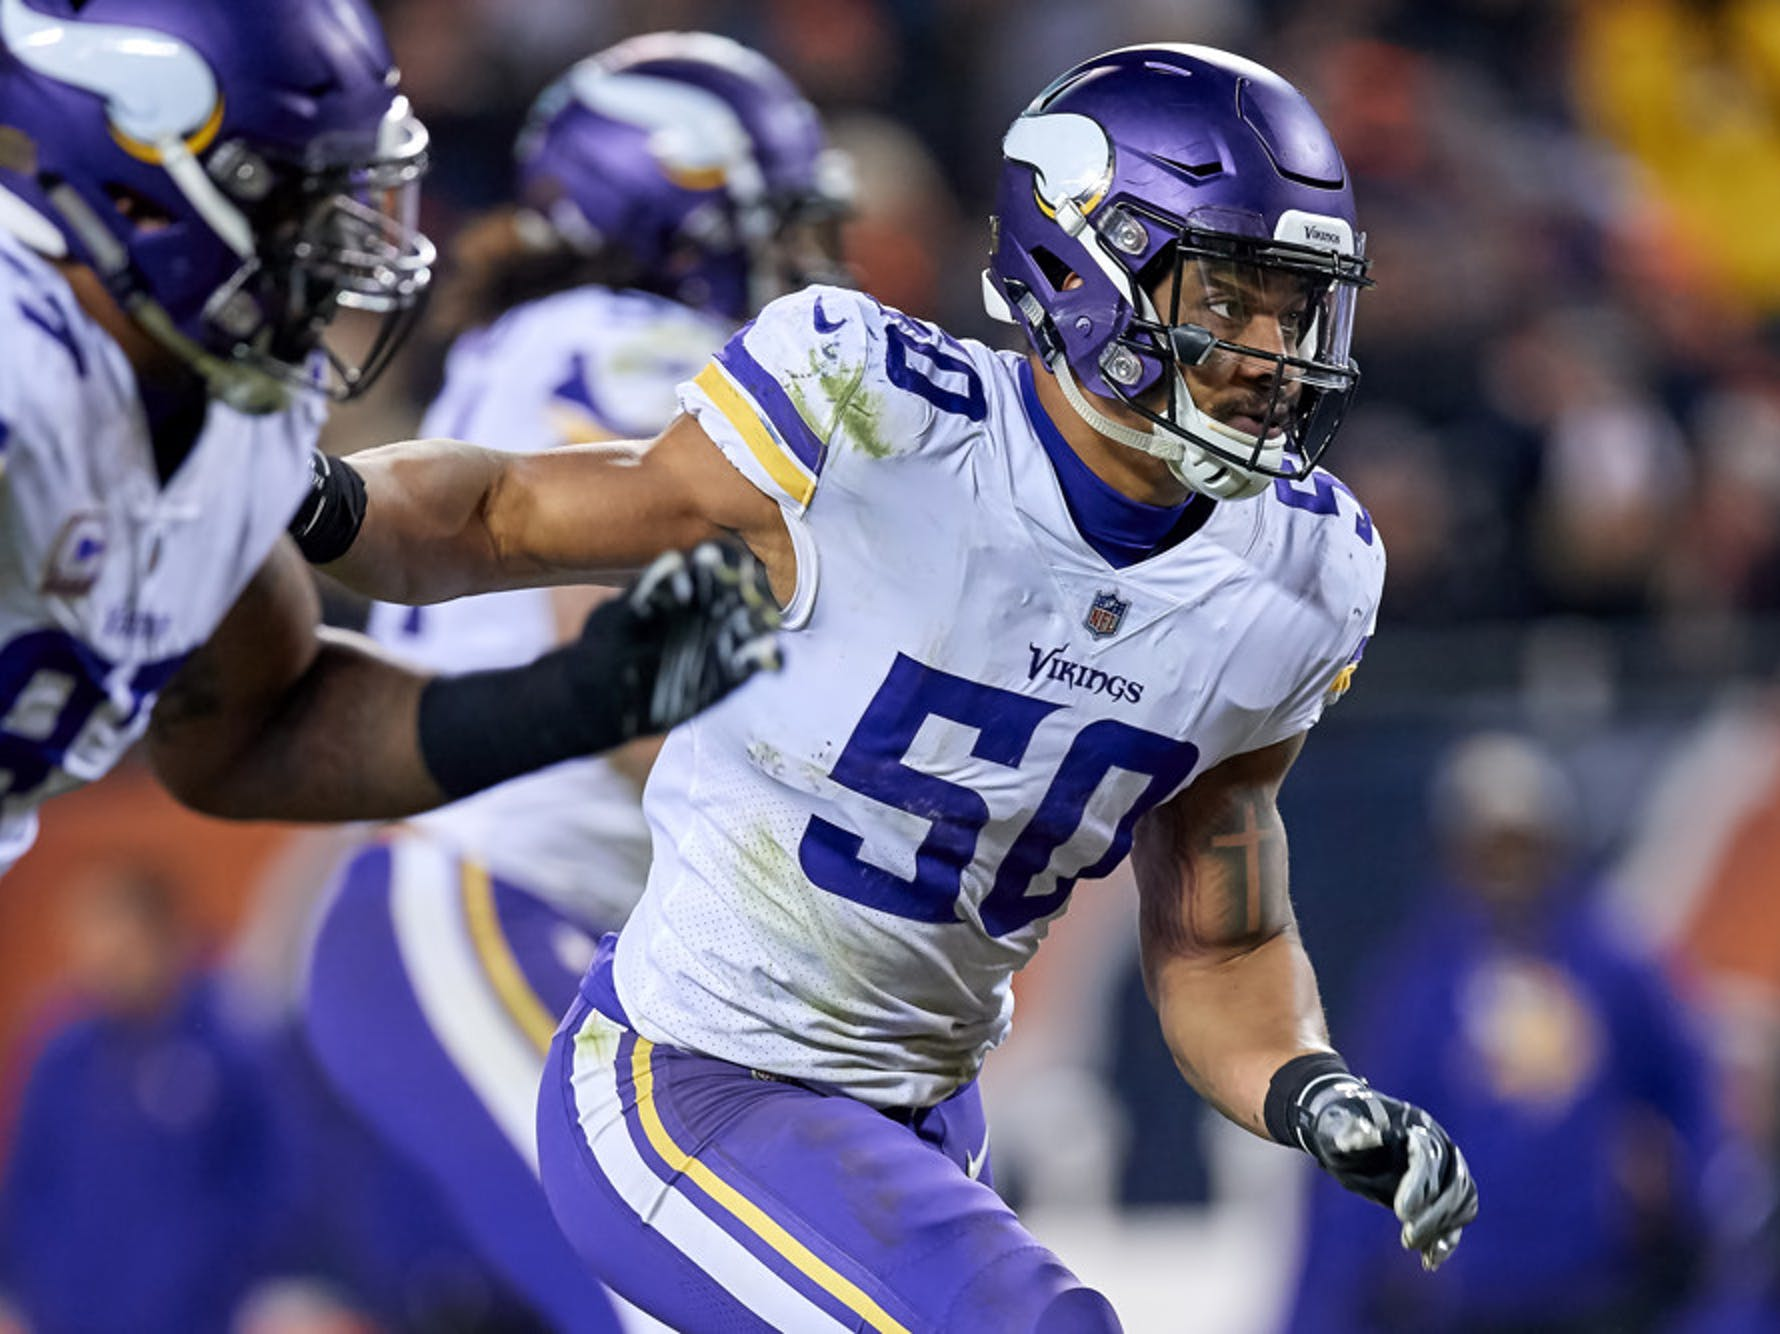 Minnesota Vikings linebacker Eric Wilson (50) runs in action during a NFL game between the Chicago Bears and the Minnesota Vikings on November 18, 2018 at Soldier Field, in Chicago, Illinois. (Photo by Robin Alam/Icon Sportswire)